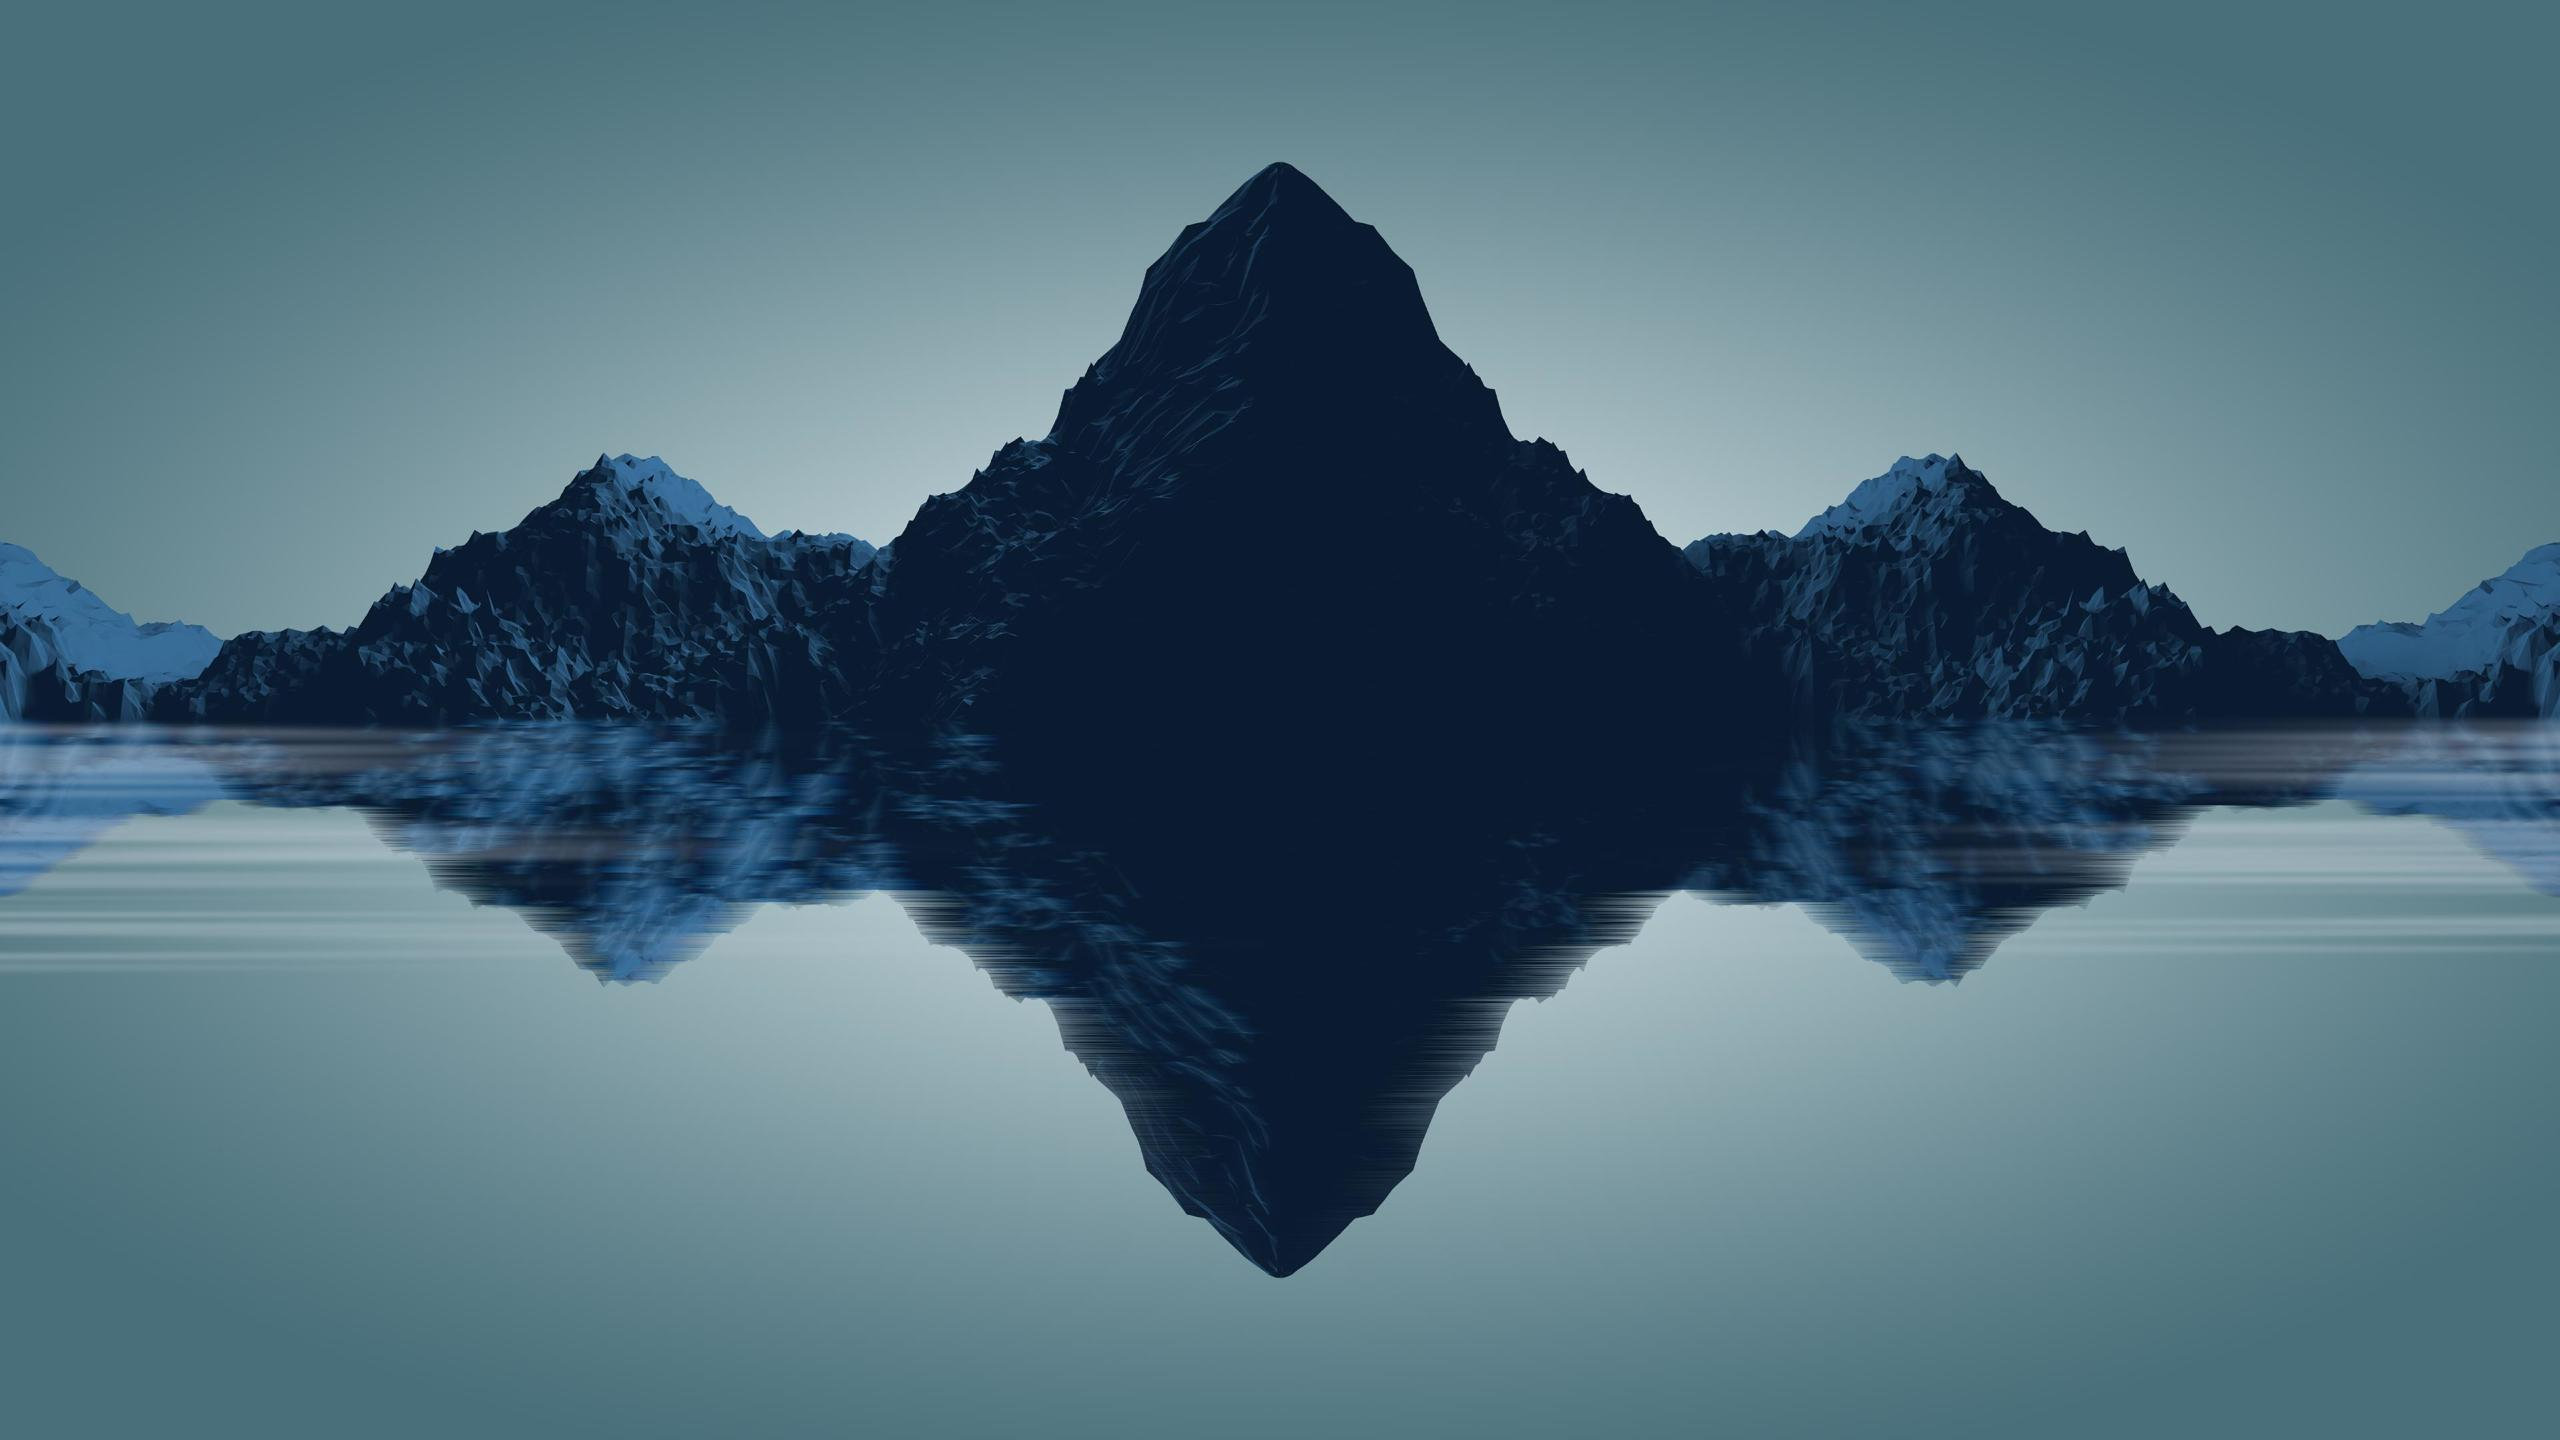 2560x1440 Minimal Mountains 1440P Resolution Wallpaper, HD ...